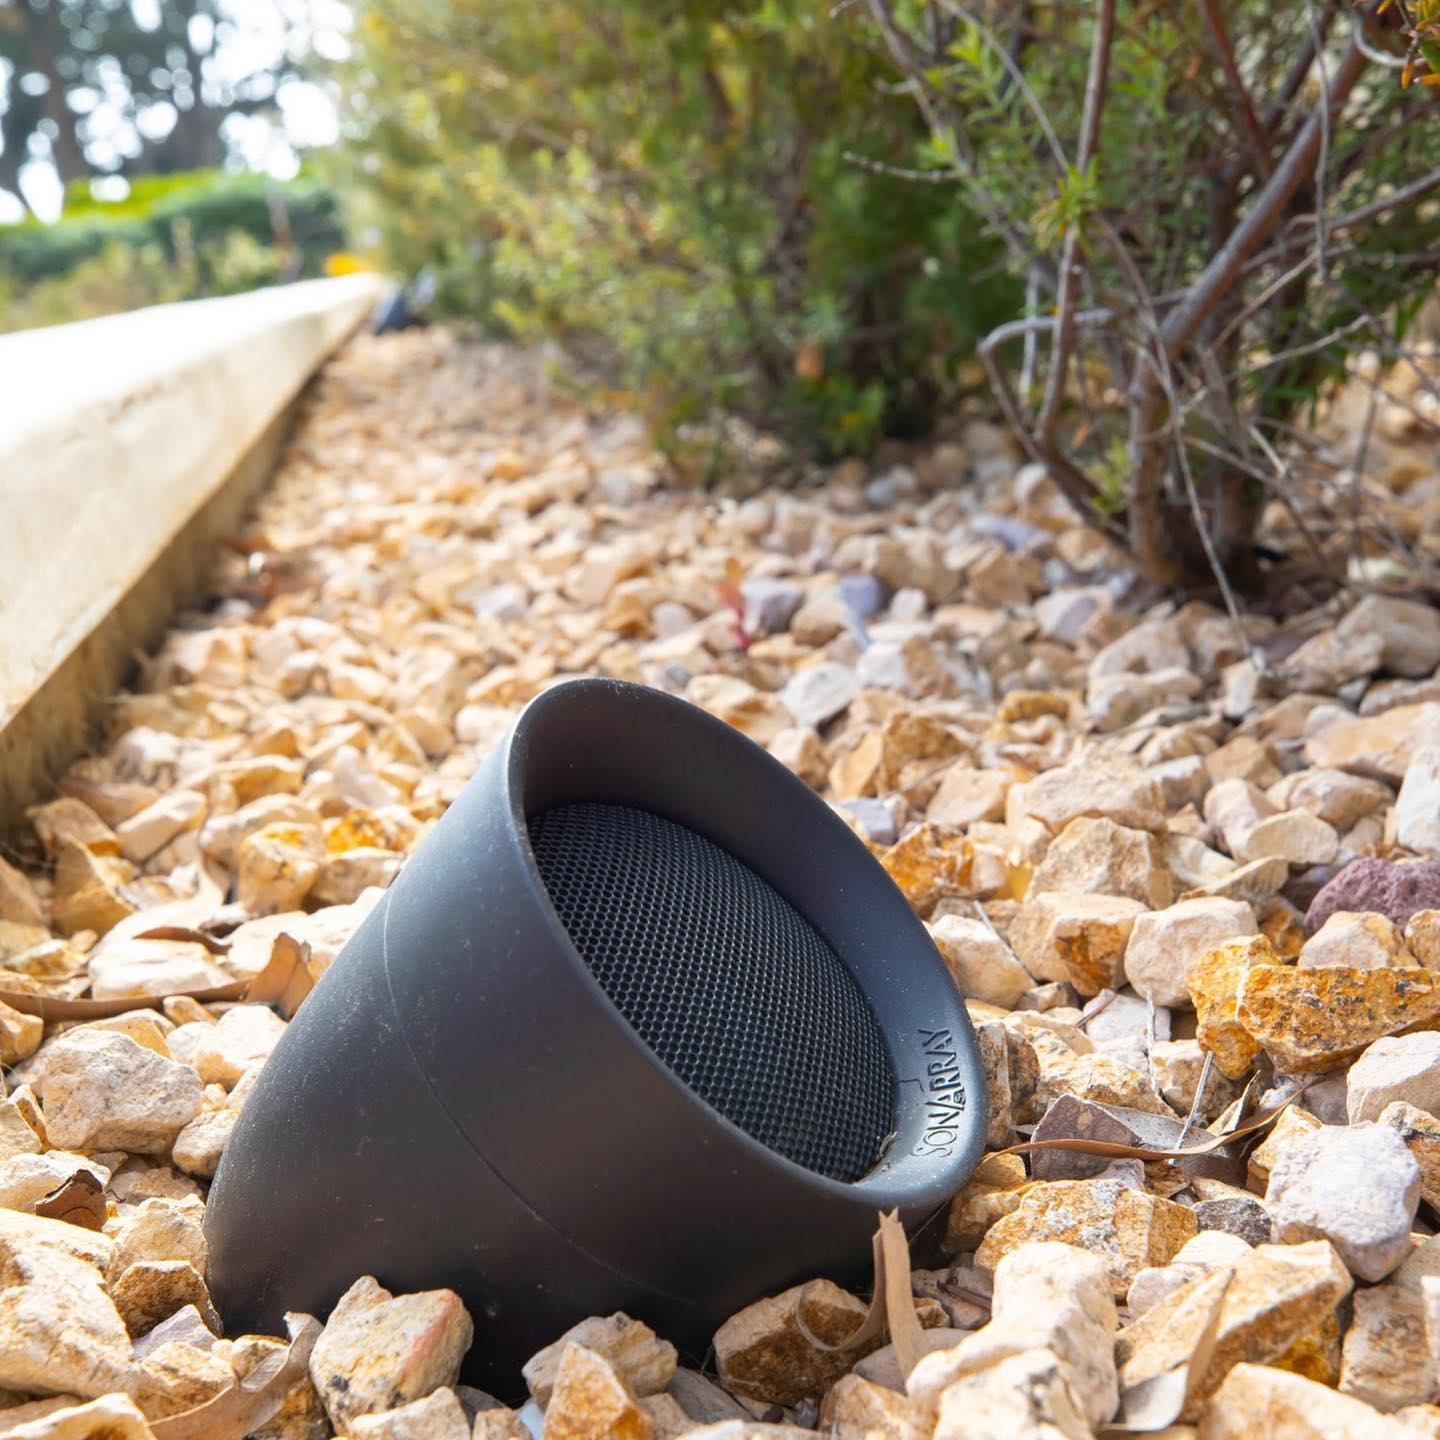 Sonance landscape speakers are a great addition to any outdoor space.  . . #sonance #sonancespeakers #outdoormusic #subwoofer #liveoutdoors #sonarray #savantsystems #outdoorparty #reggeasunday